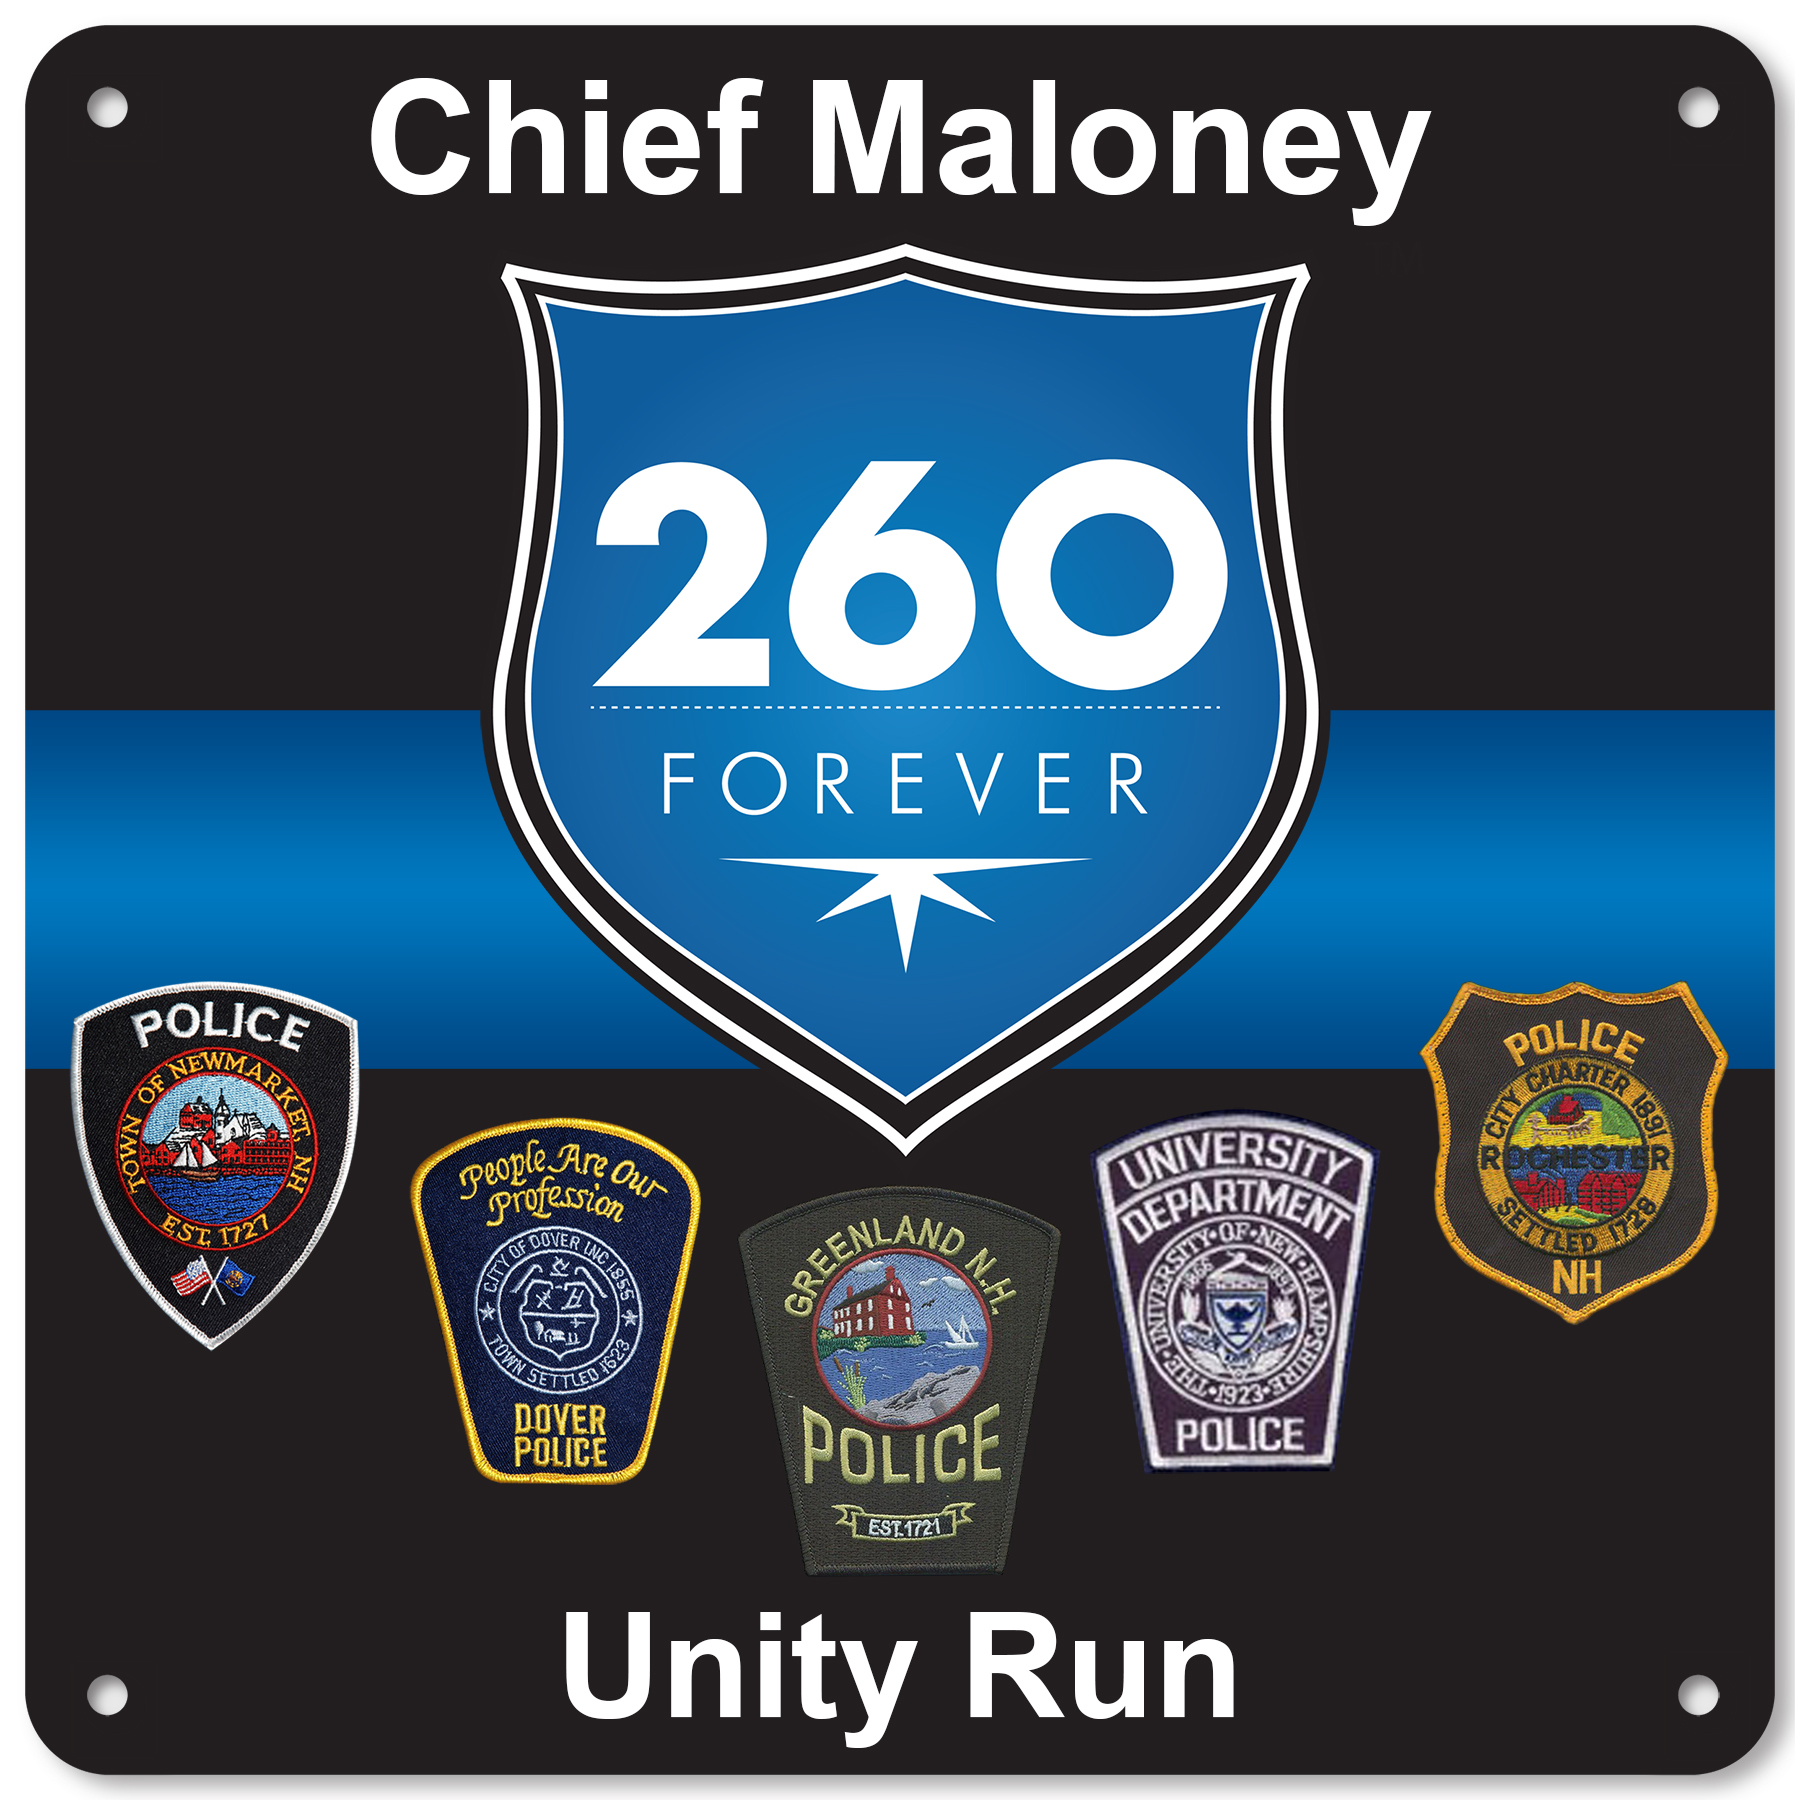 BIB NUMBERS: 2014 Chief Maloney Unity Run